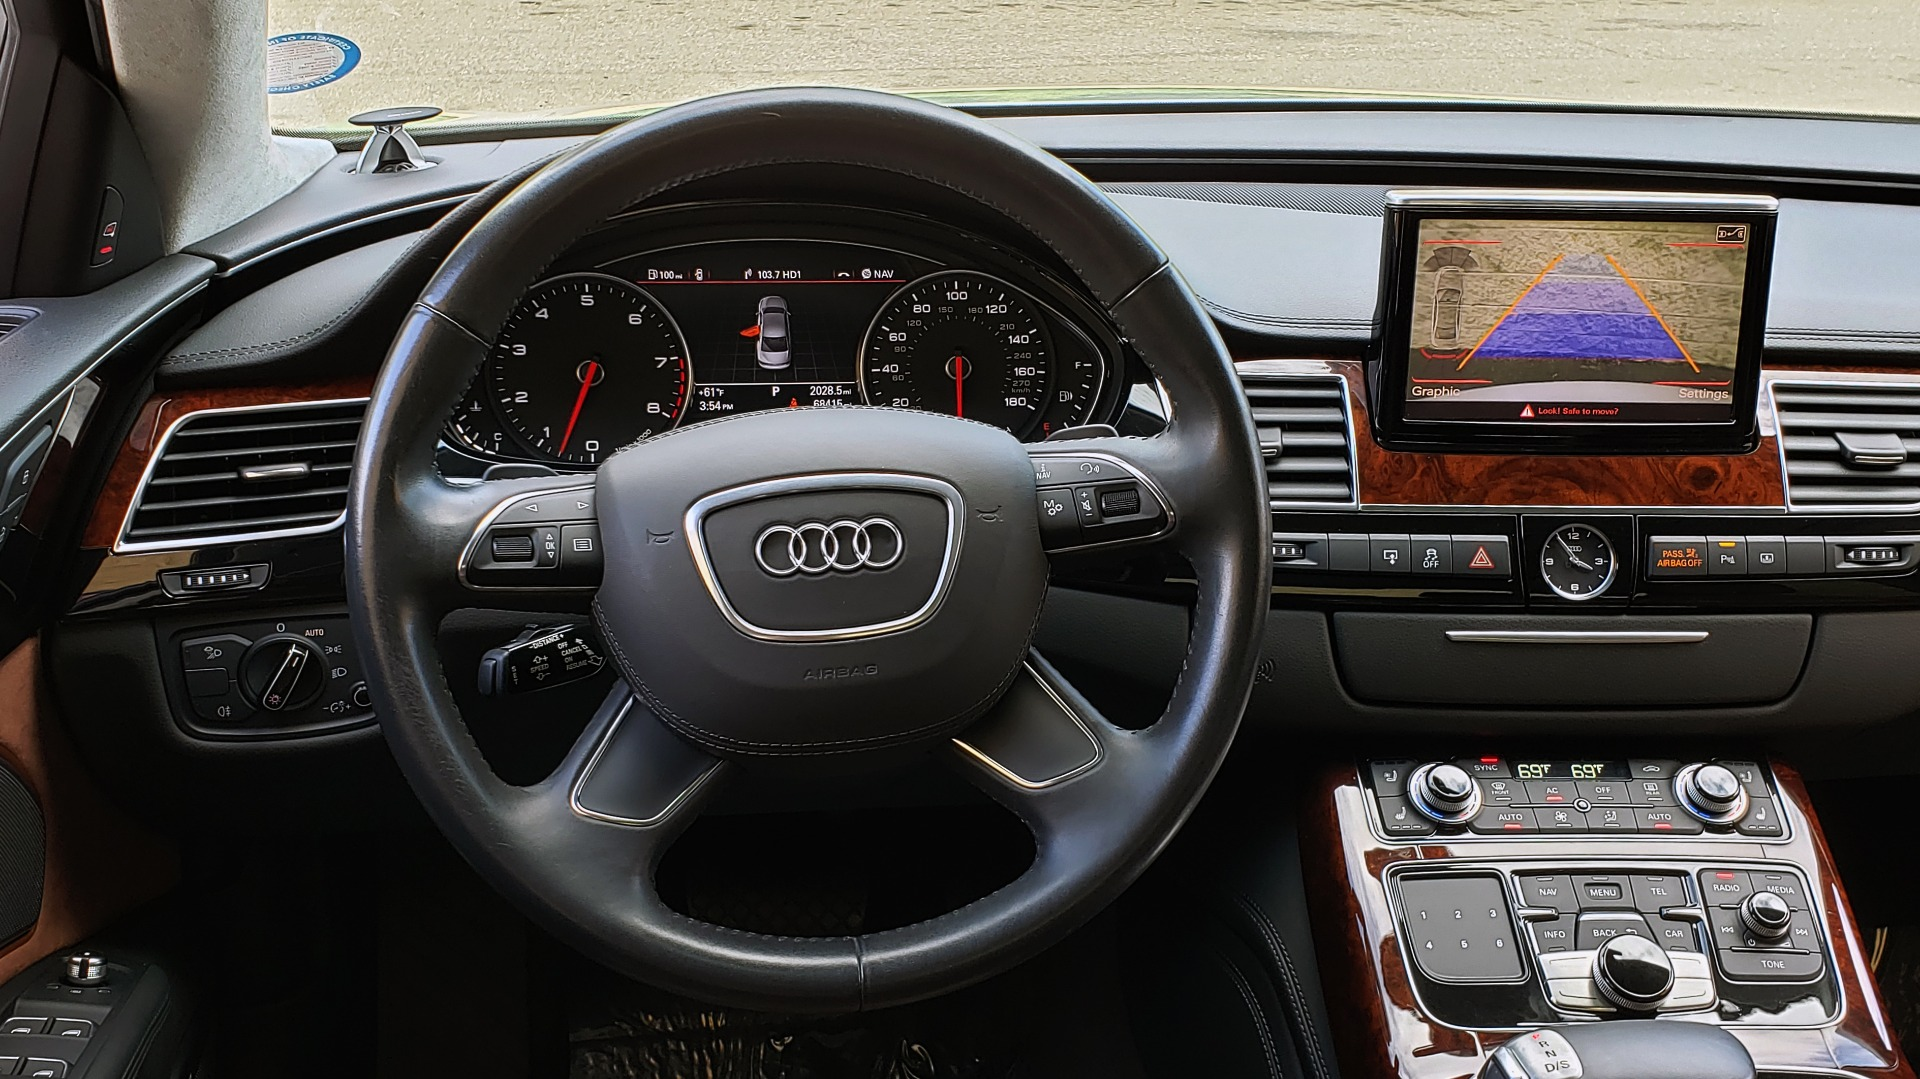 Used 2011 Audi A8 L QUATTRO / NAV / PANO-ROOF / REARVIEW / BSM / B&O SND for sale Sold at Formula Imports in Charlotte NC 28227 41